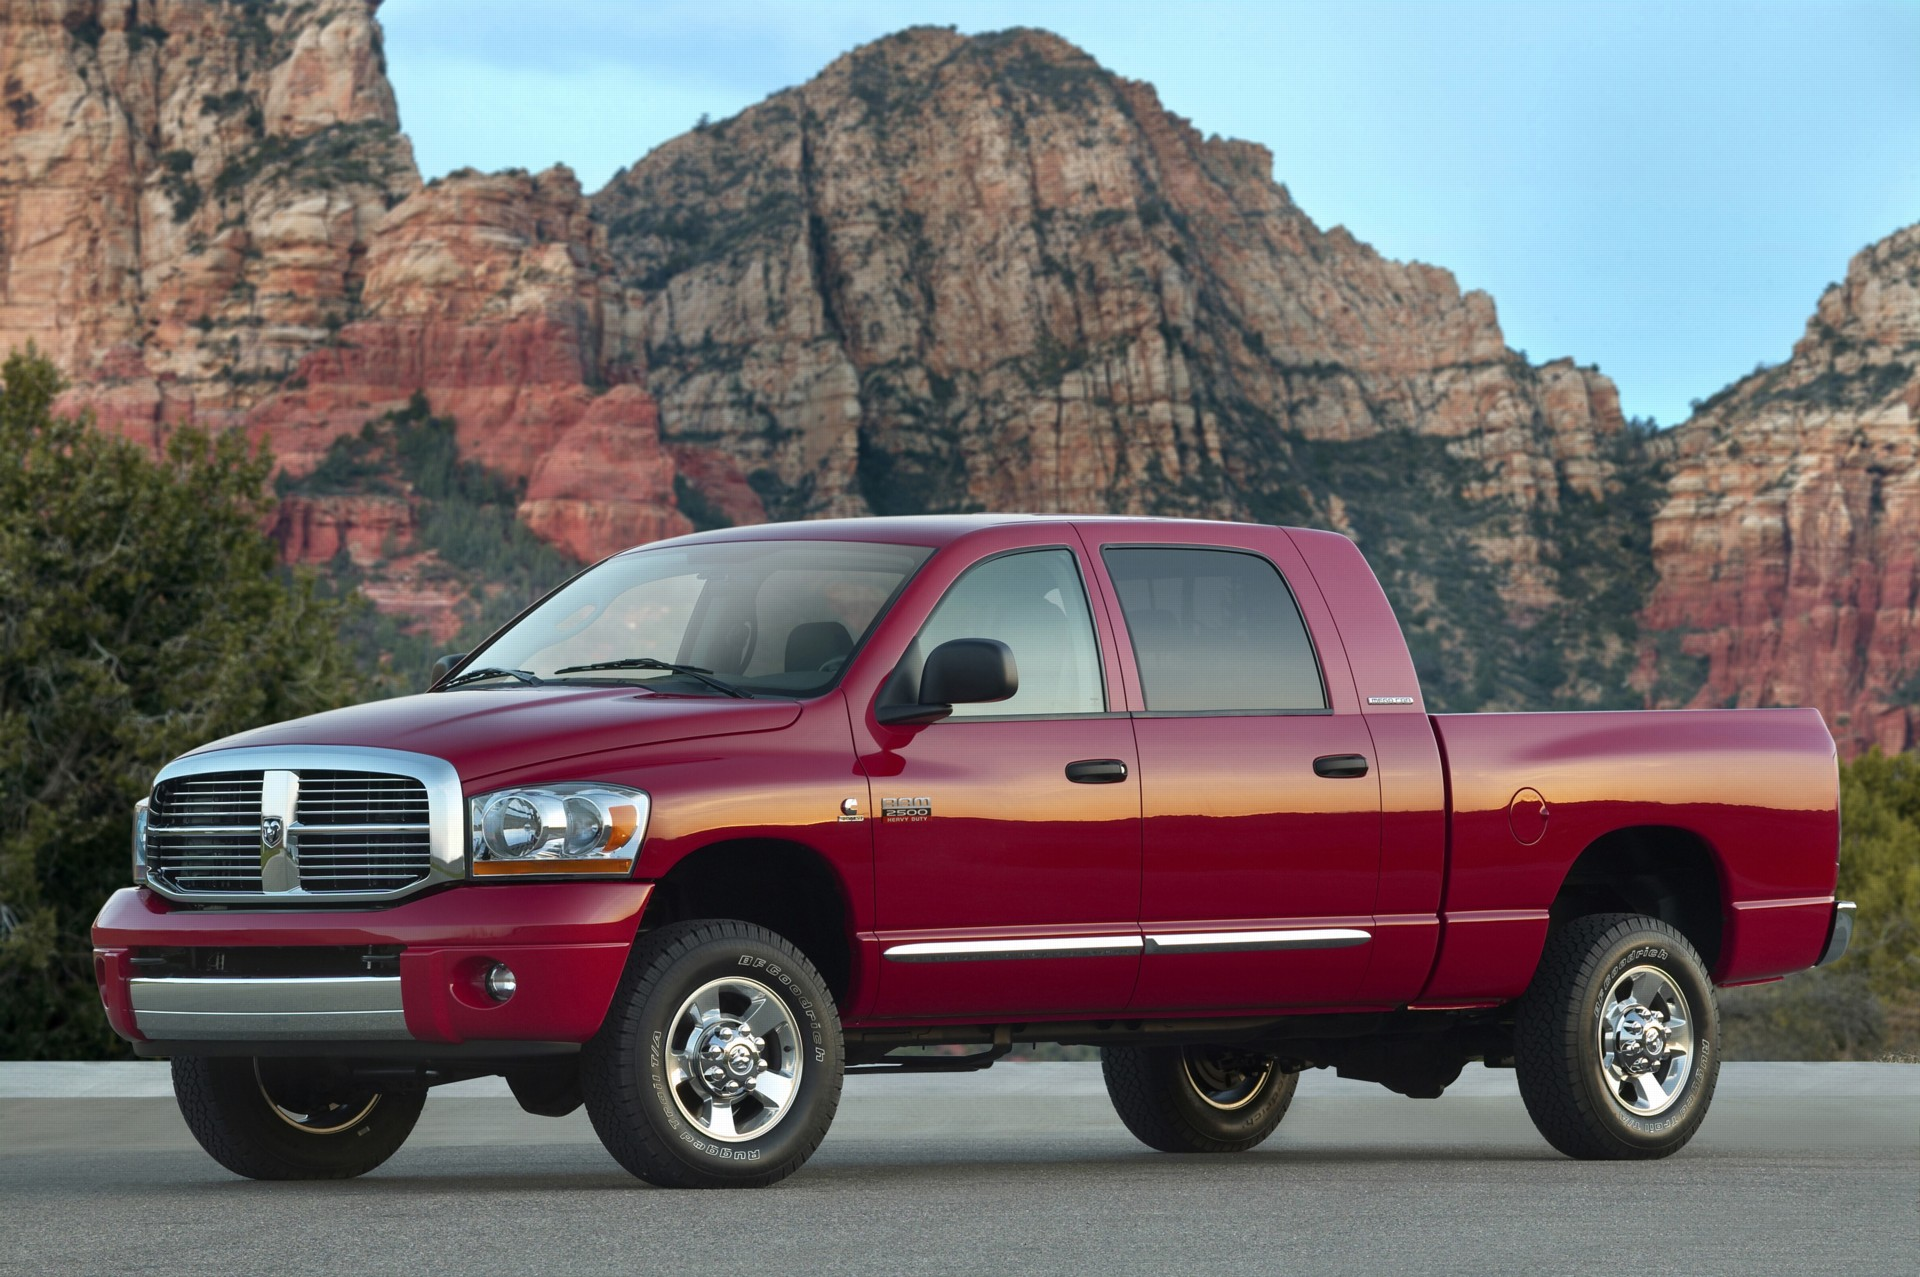 2007 Dodge Ram 3500 History Pictures Value Auction Sales 2001 Extended Cab Research And News